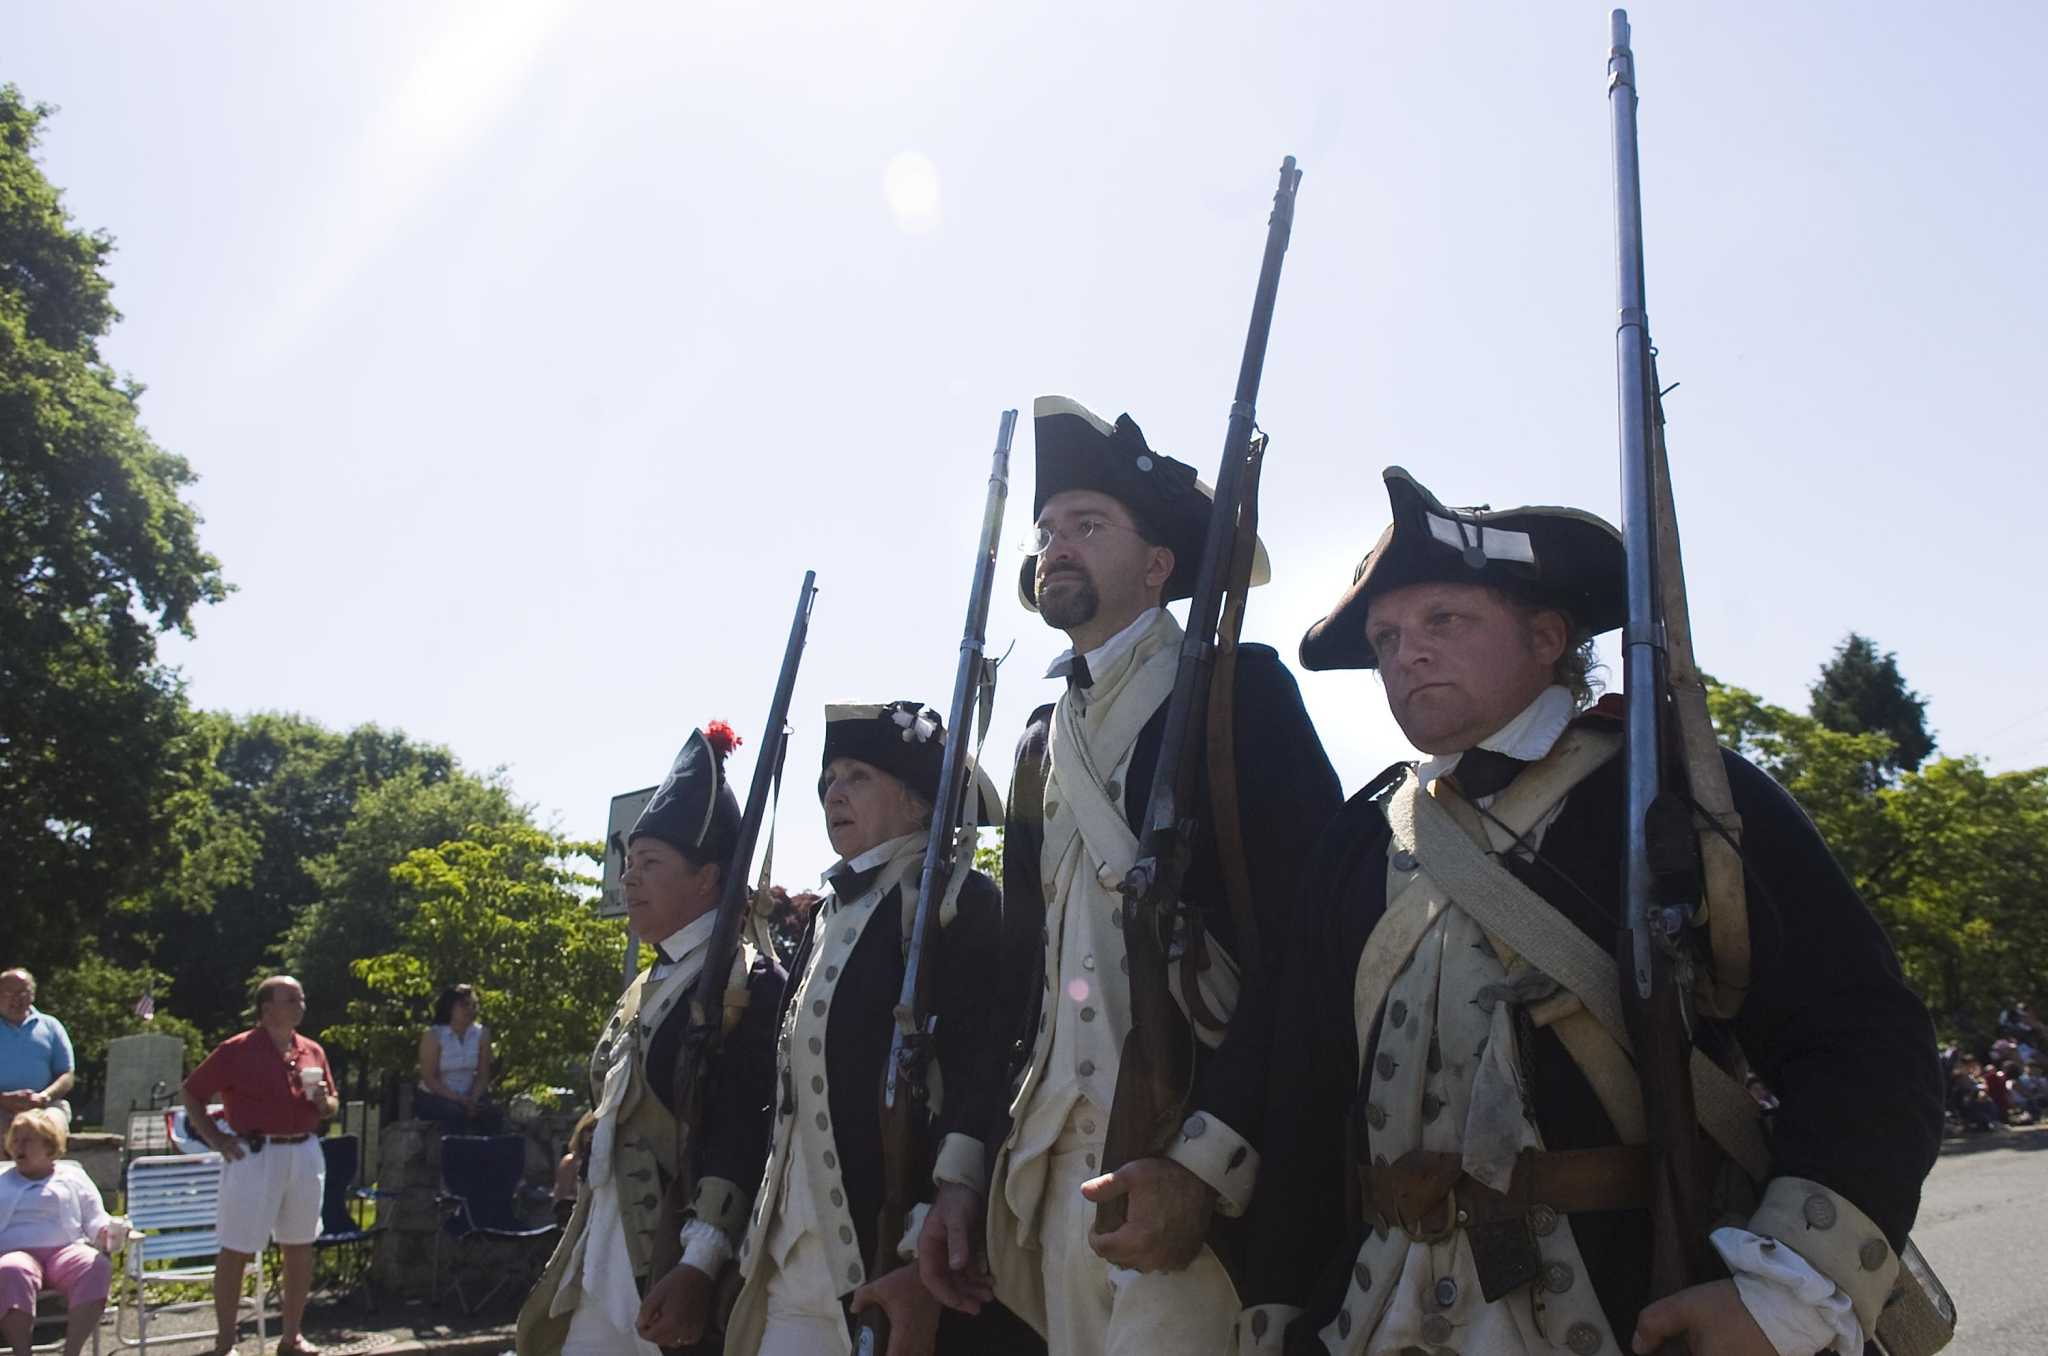 Black Revolutionary War veteran from New Haven to be celebrated